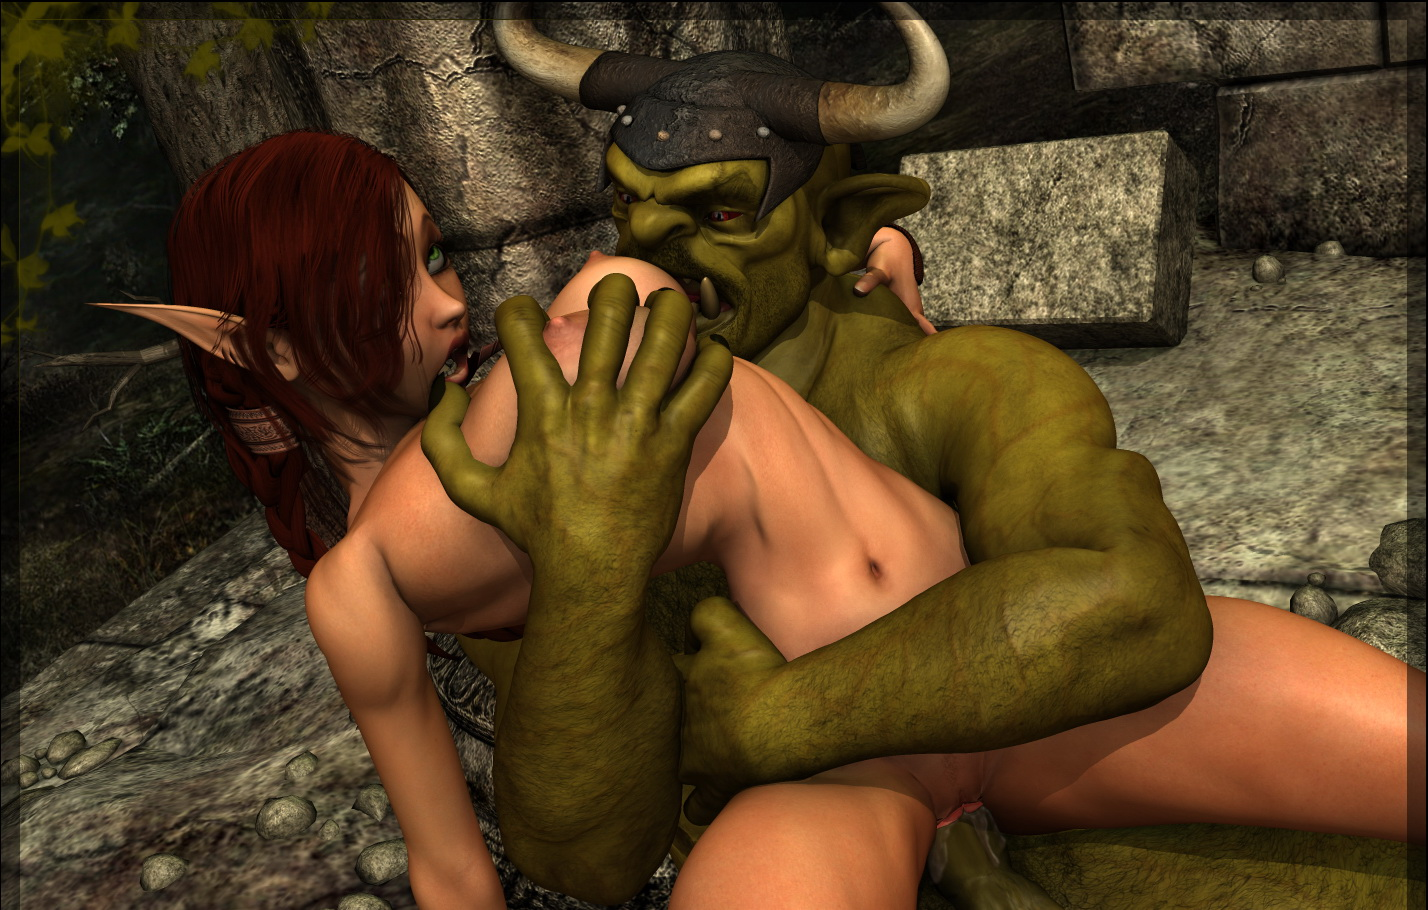 Hentay woman demon erotica porn star